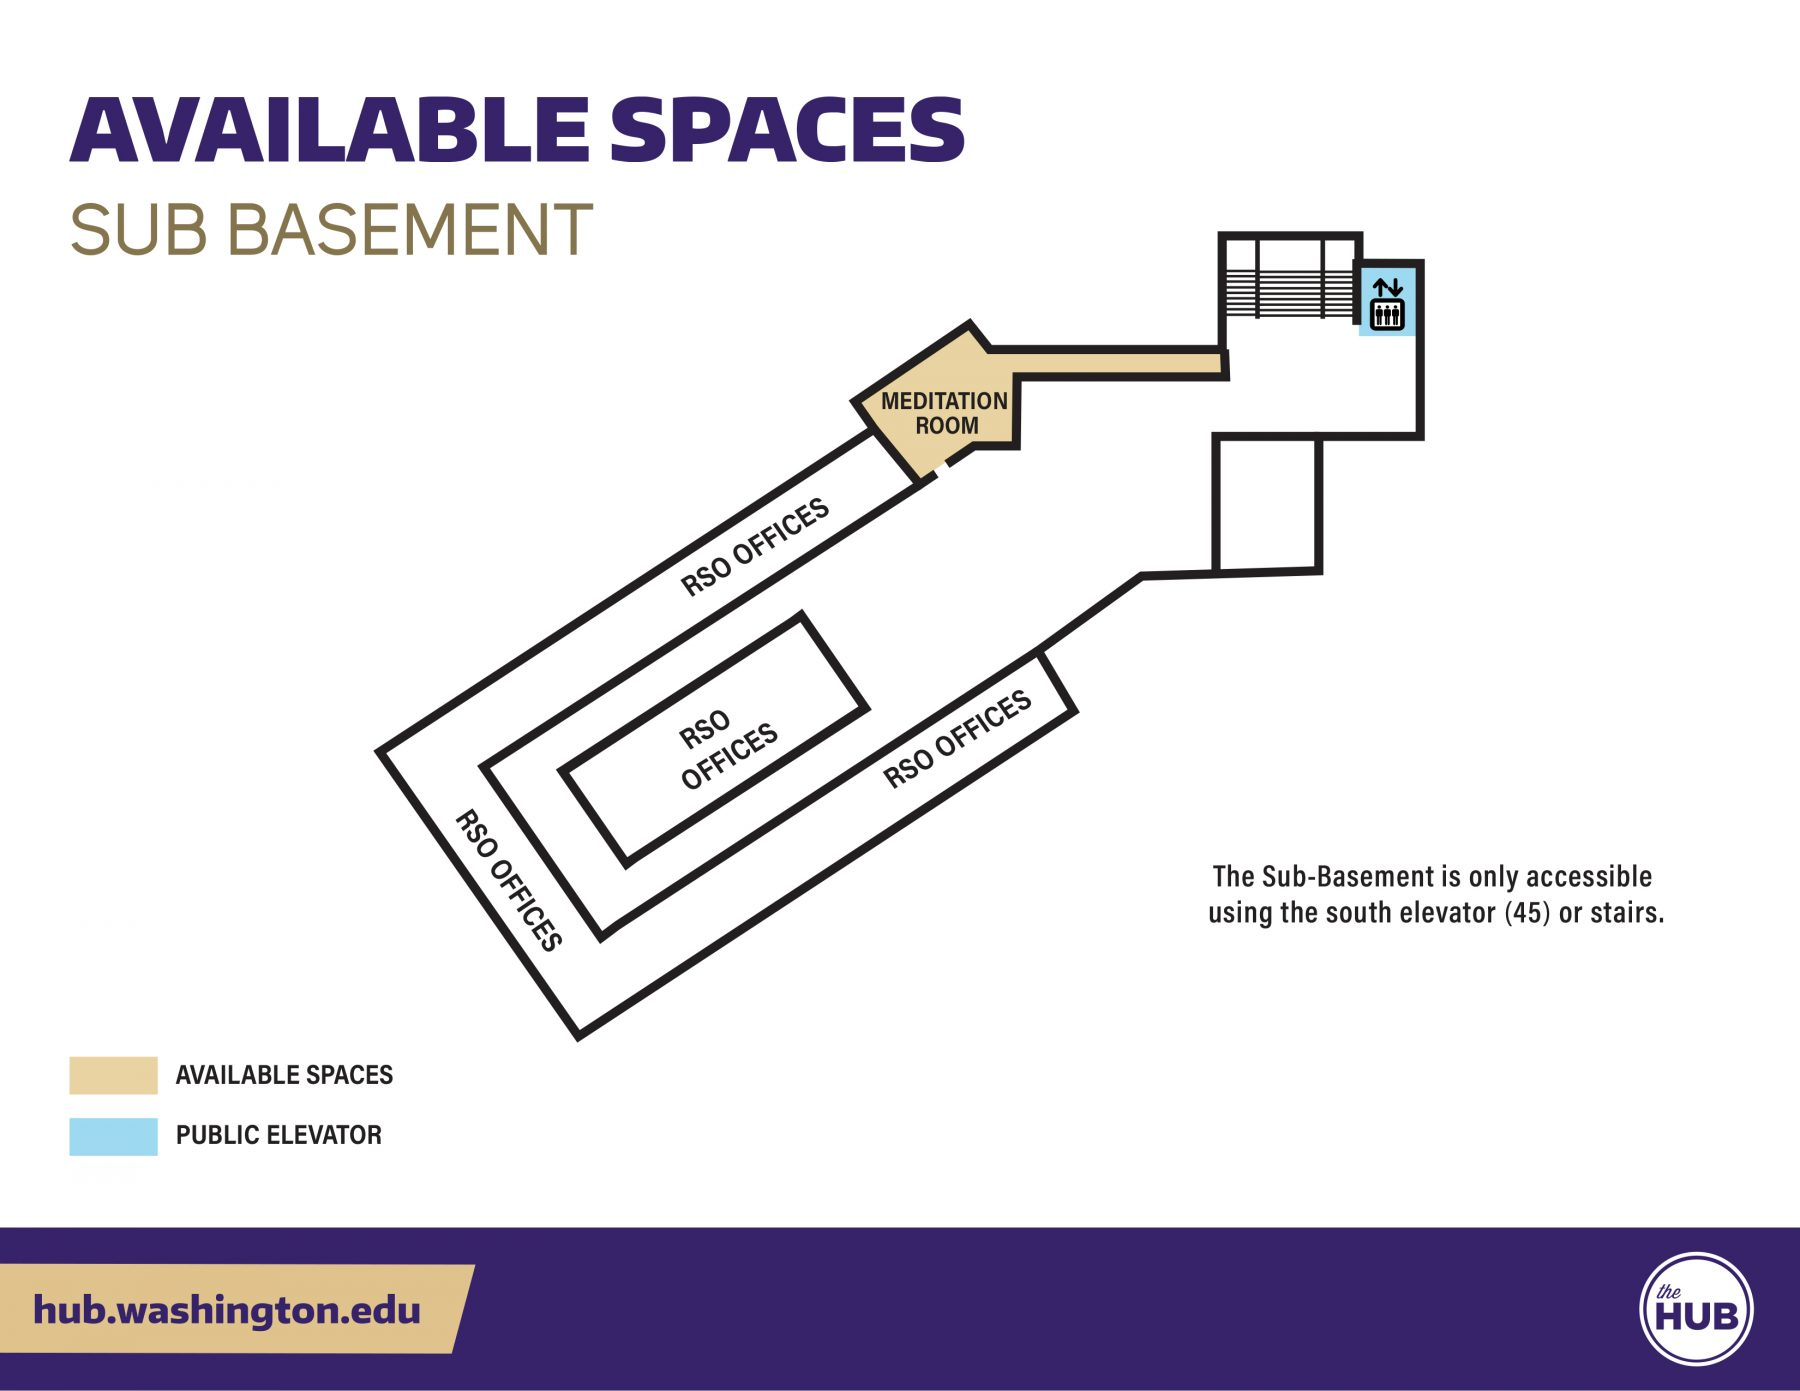 HUB Available Spaces - Sub Basement